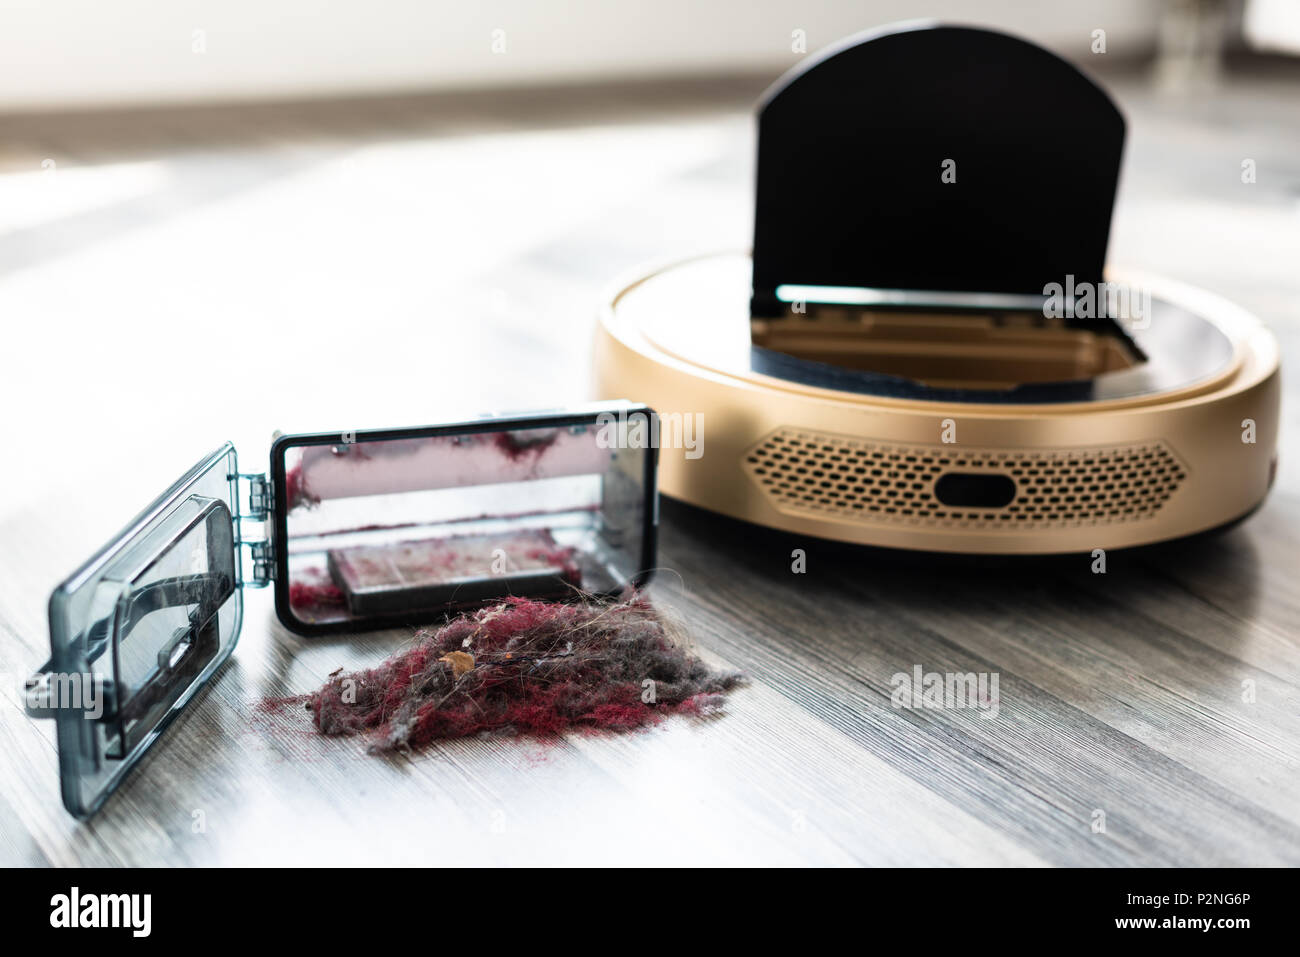 robotic vacuum cleaner on wood floor with emptied dirt container Stock Photo